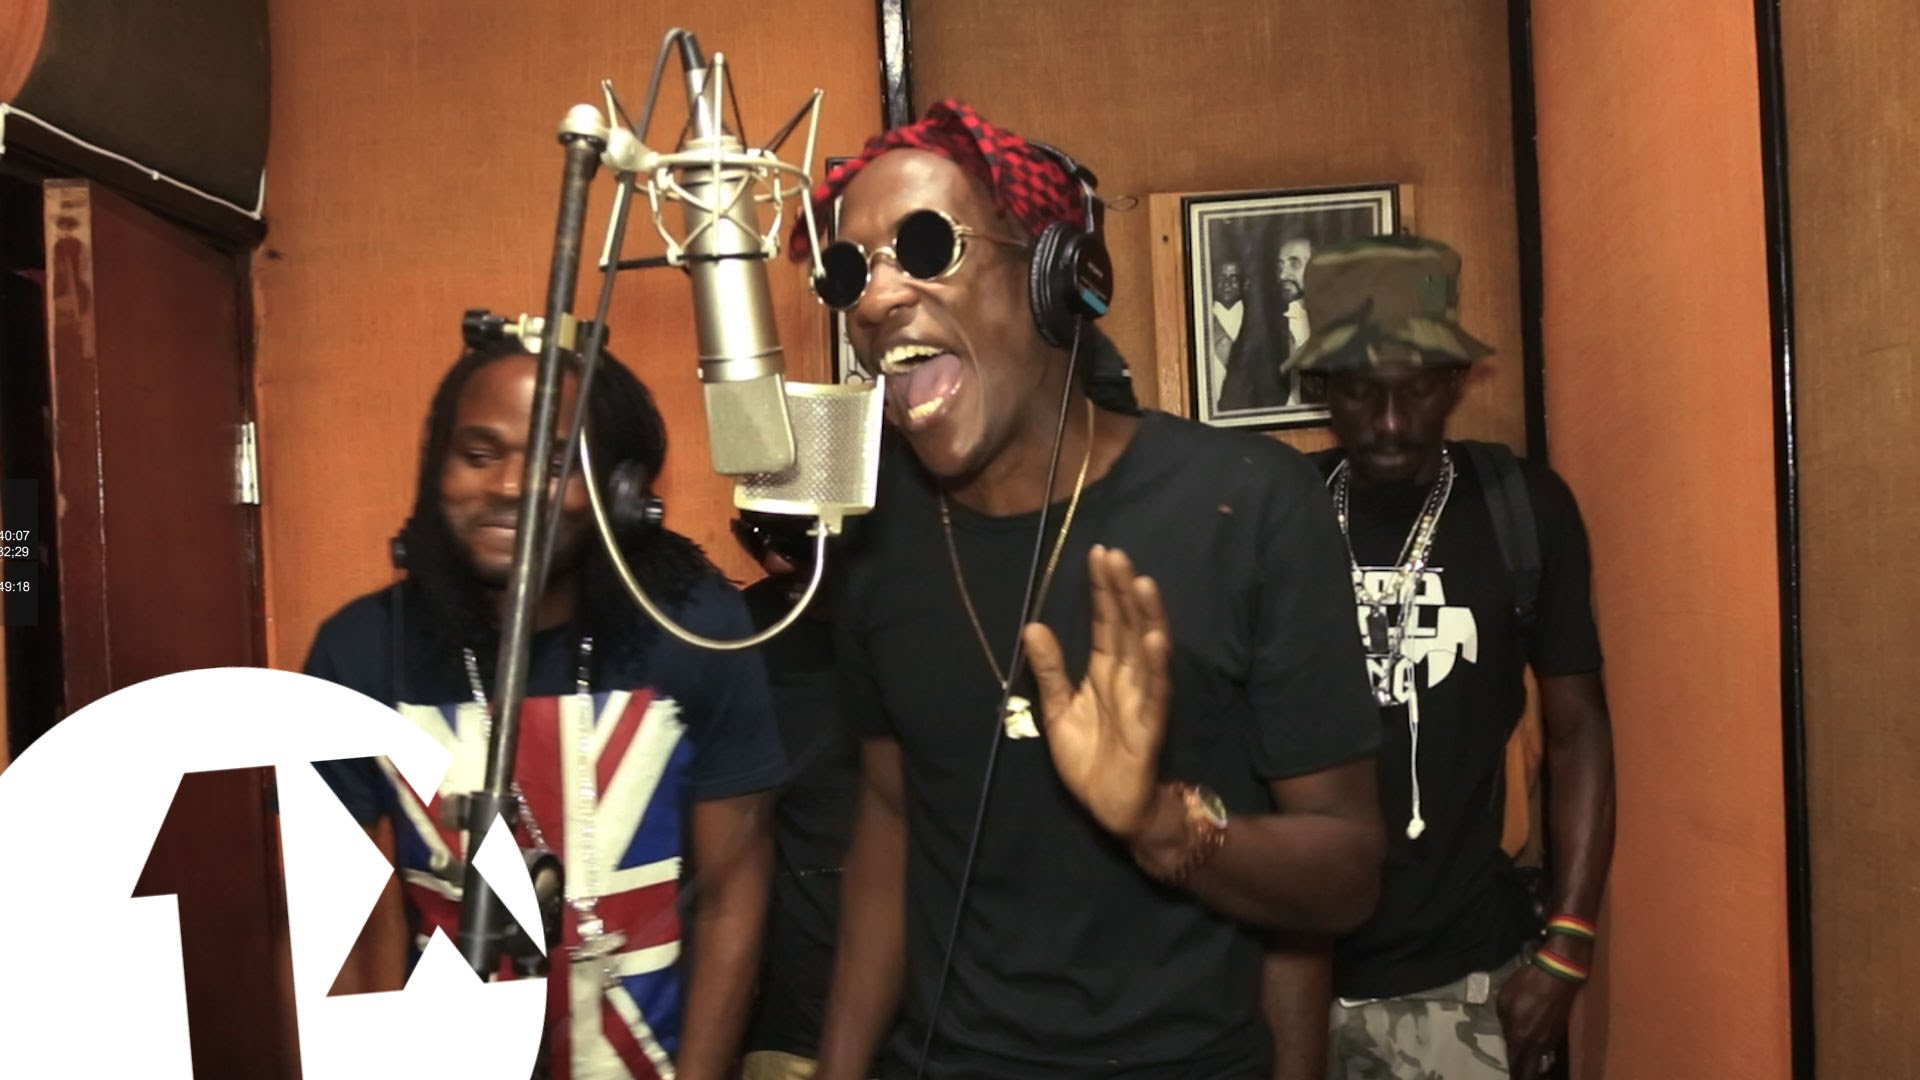 BigShip artistes performs cypher for BBC 1Xtra